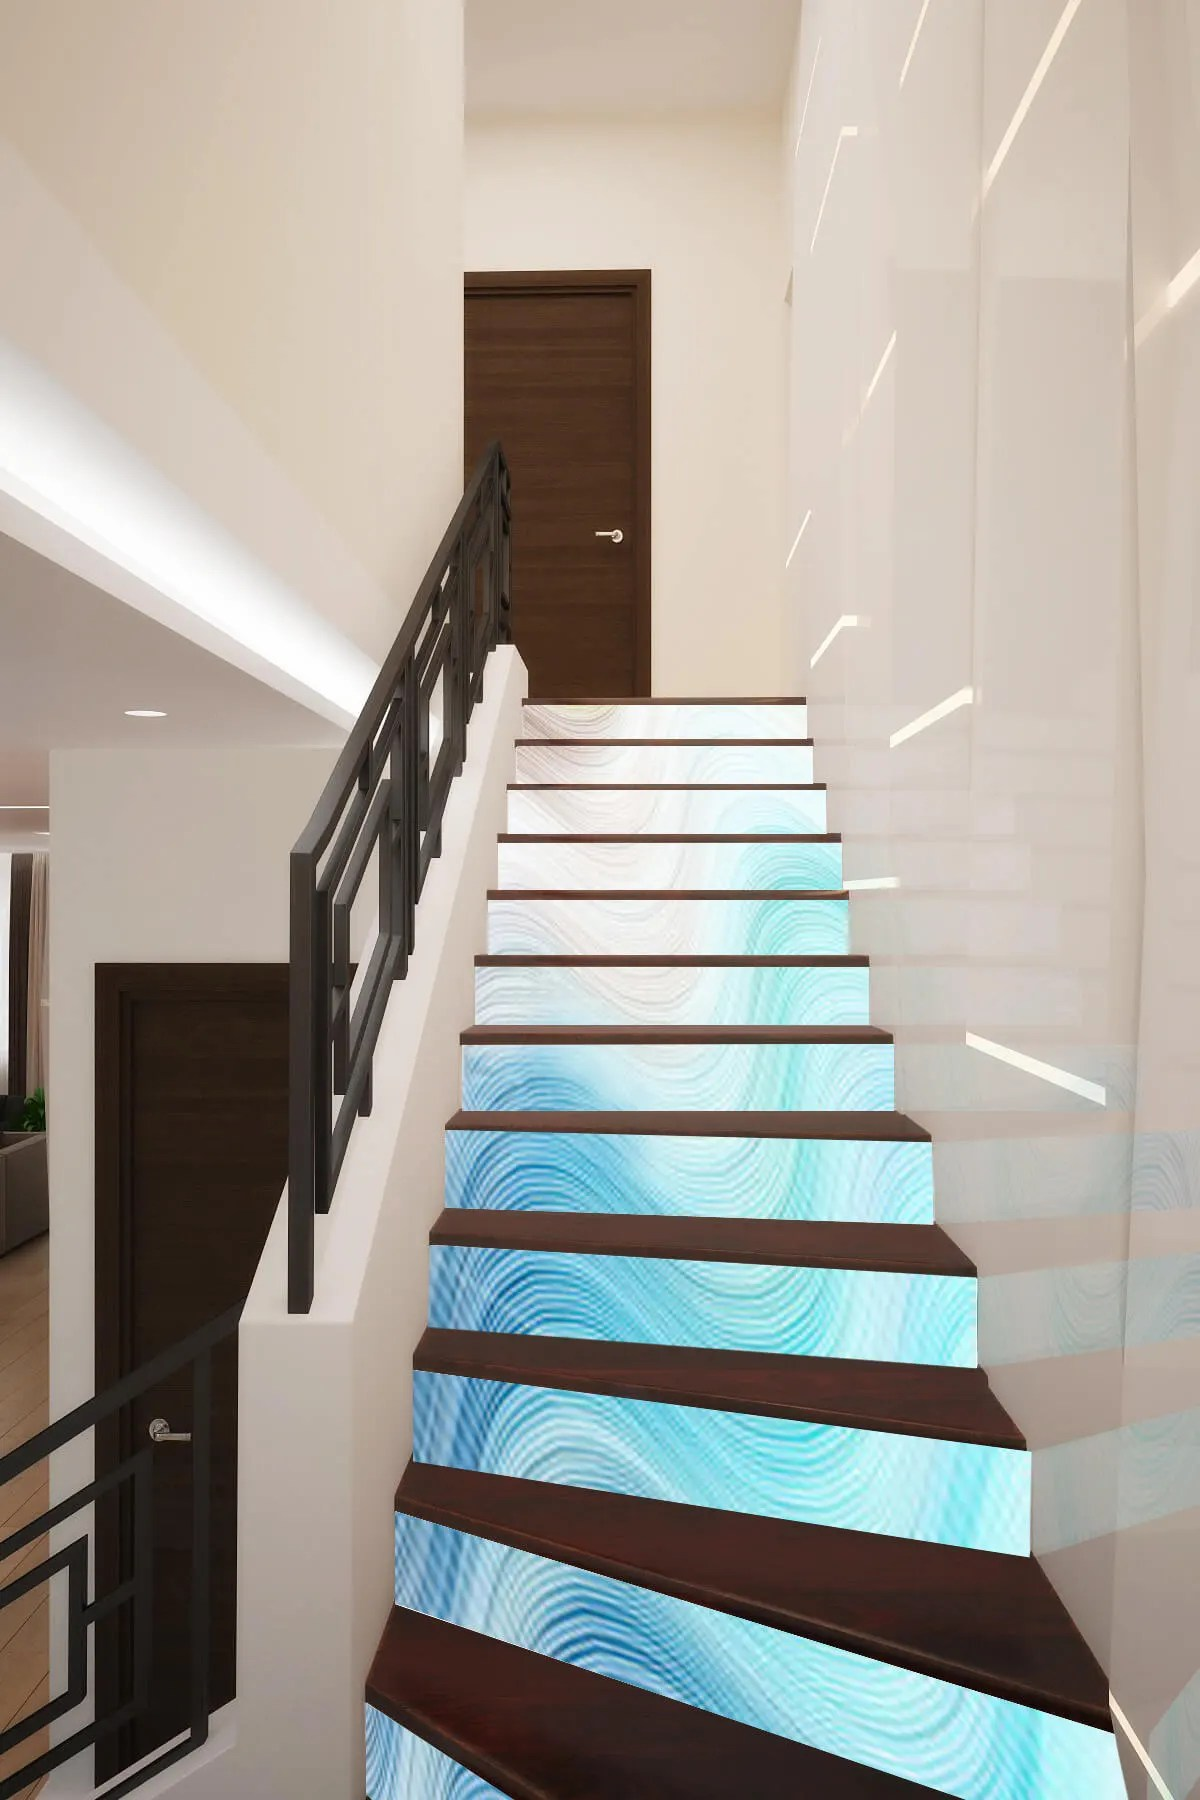 Décoration Murale Vinyle 3d Waves Geometry Stair Decoration Adhesive Vinyl Stair Riser Panels Stairs Risers Sticker Mural Photo Mural Vinyl Decal Wallpaper Removable